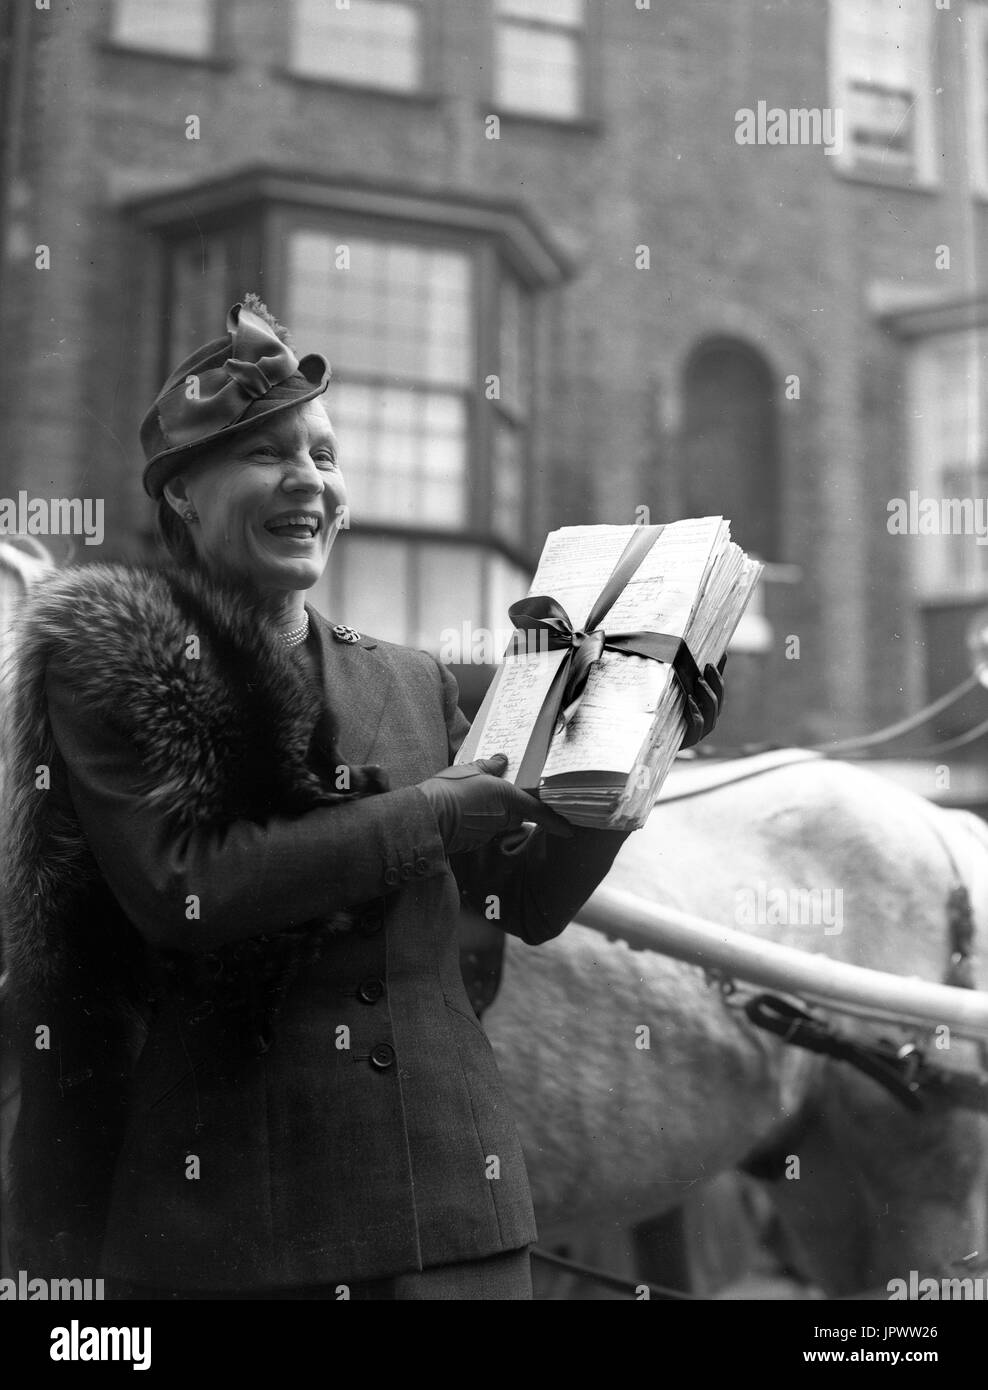 Fighting for equal pay for women March 1954. Dr Edith Summerskill MP for Fulham West arrives at the House of Commons with a petition of 80,000 signatures. - Stock Image